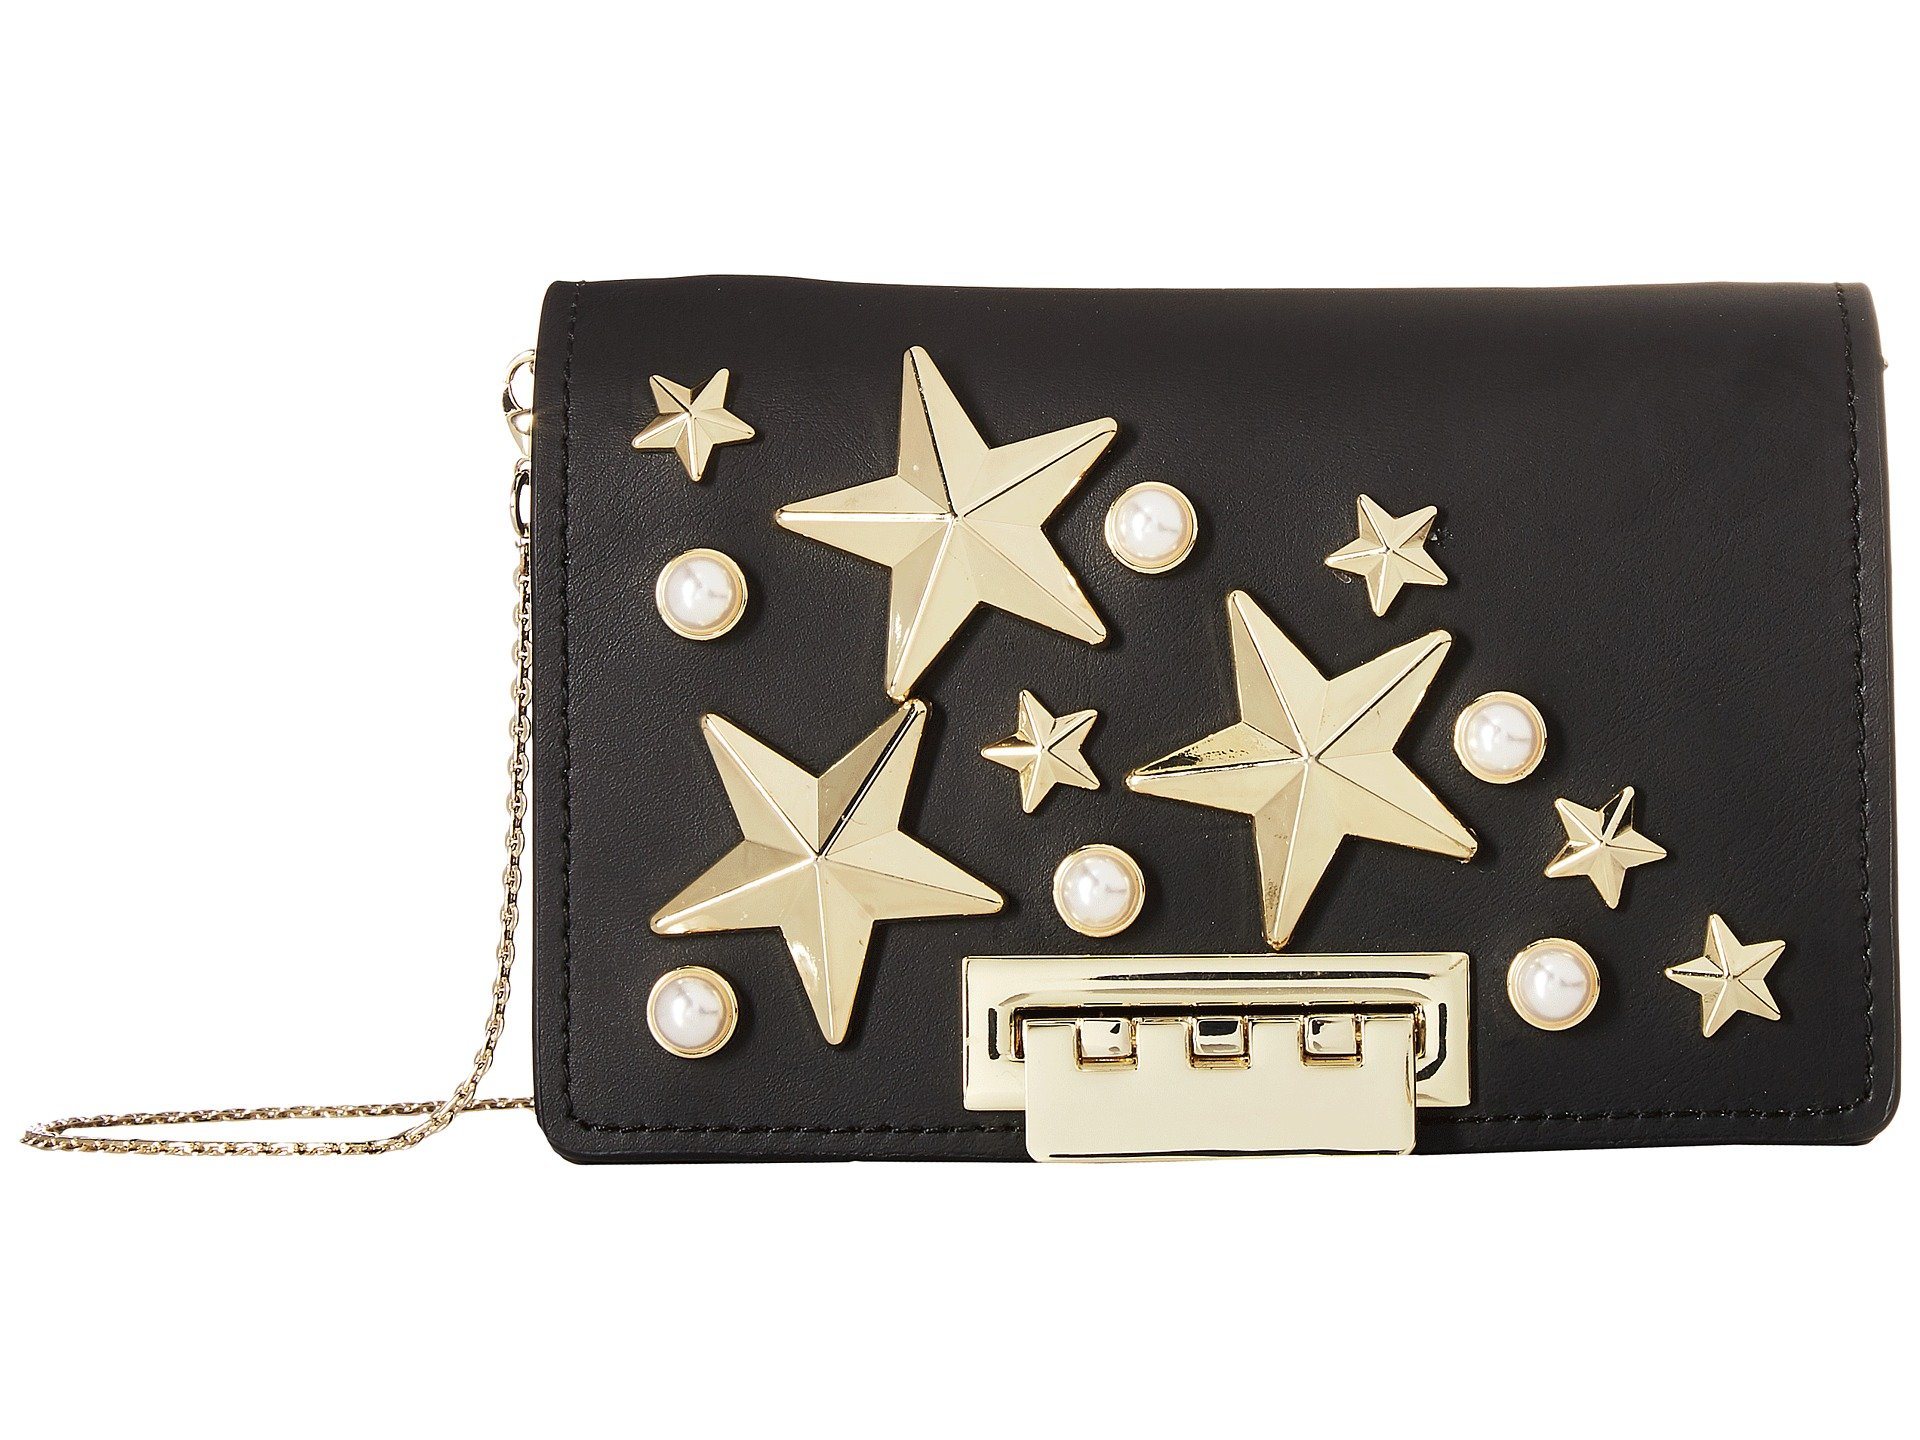 Earthette Accordion Crossbody - Star Stud, Black